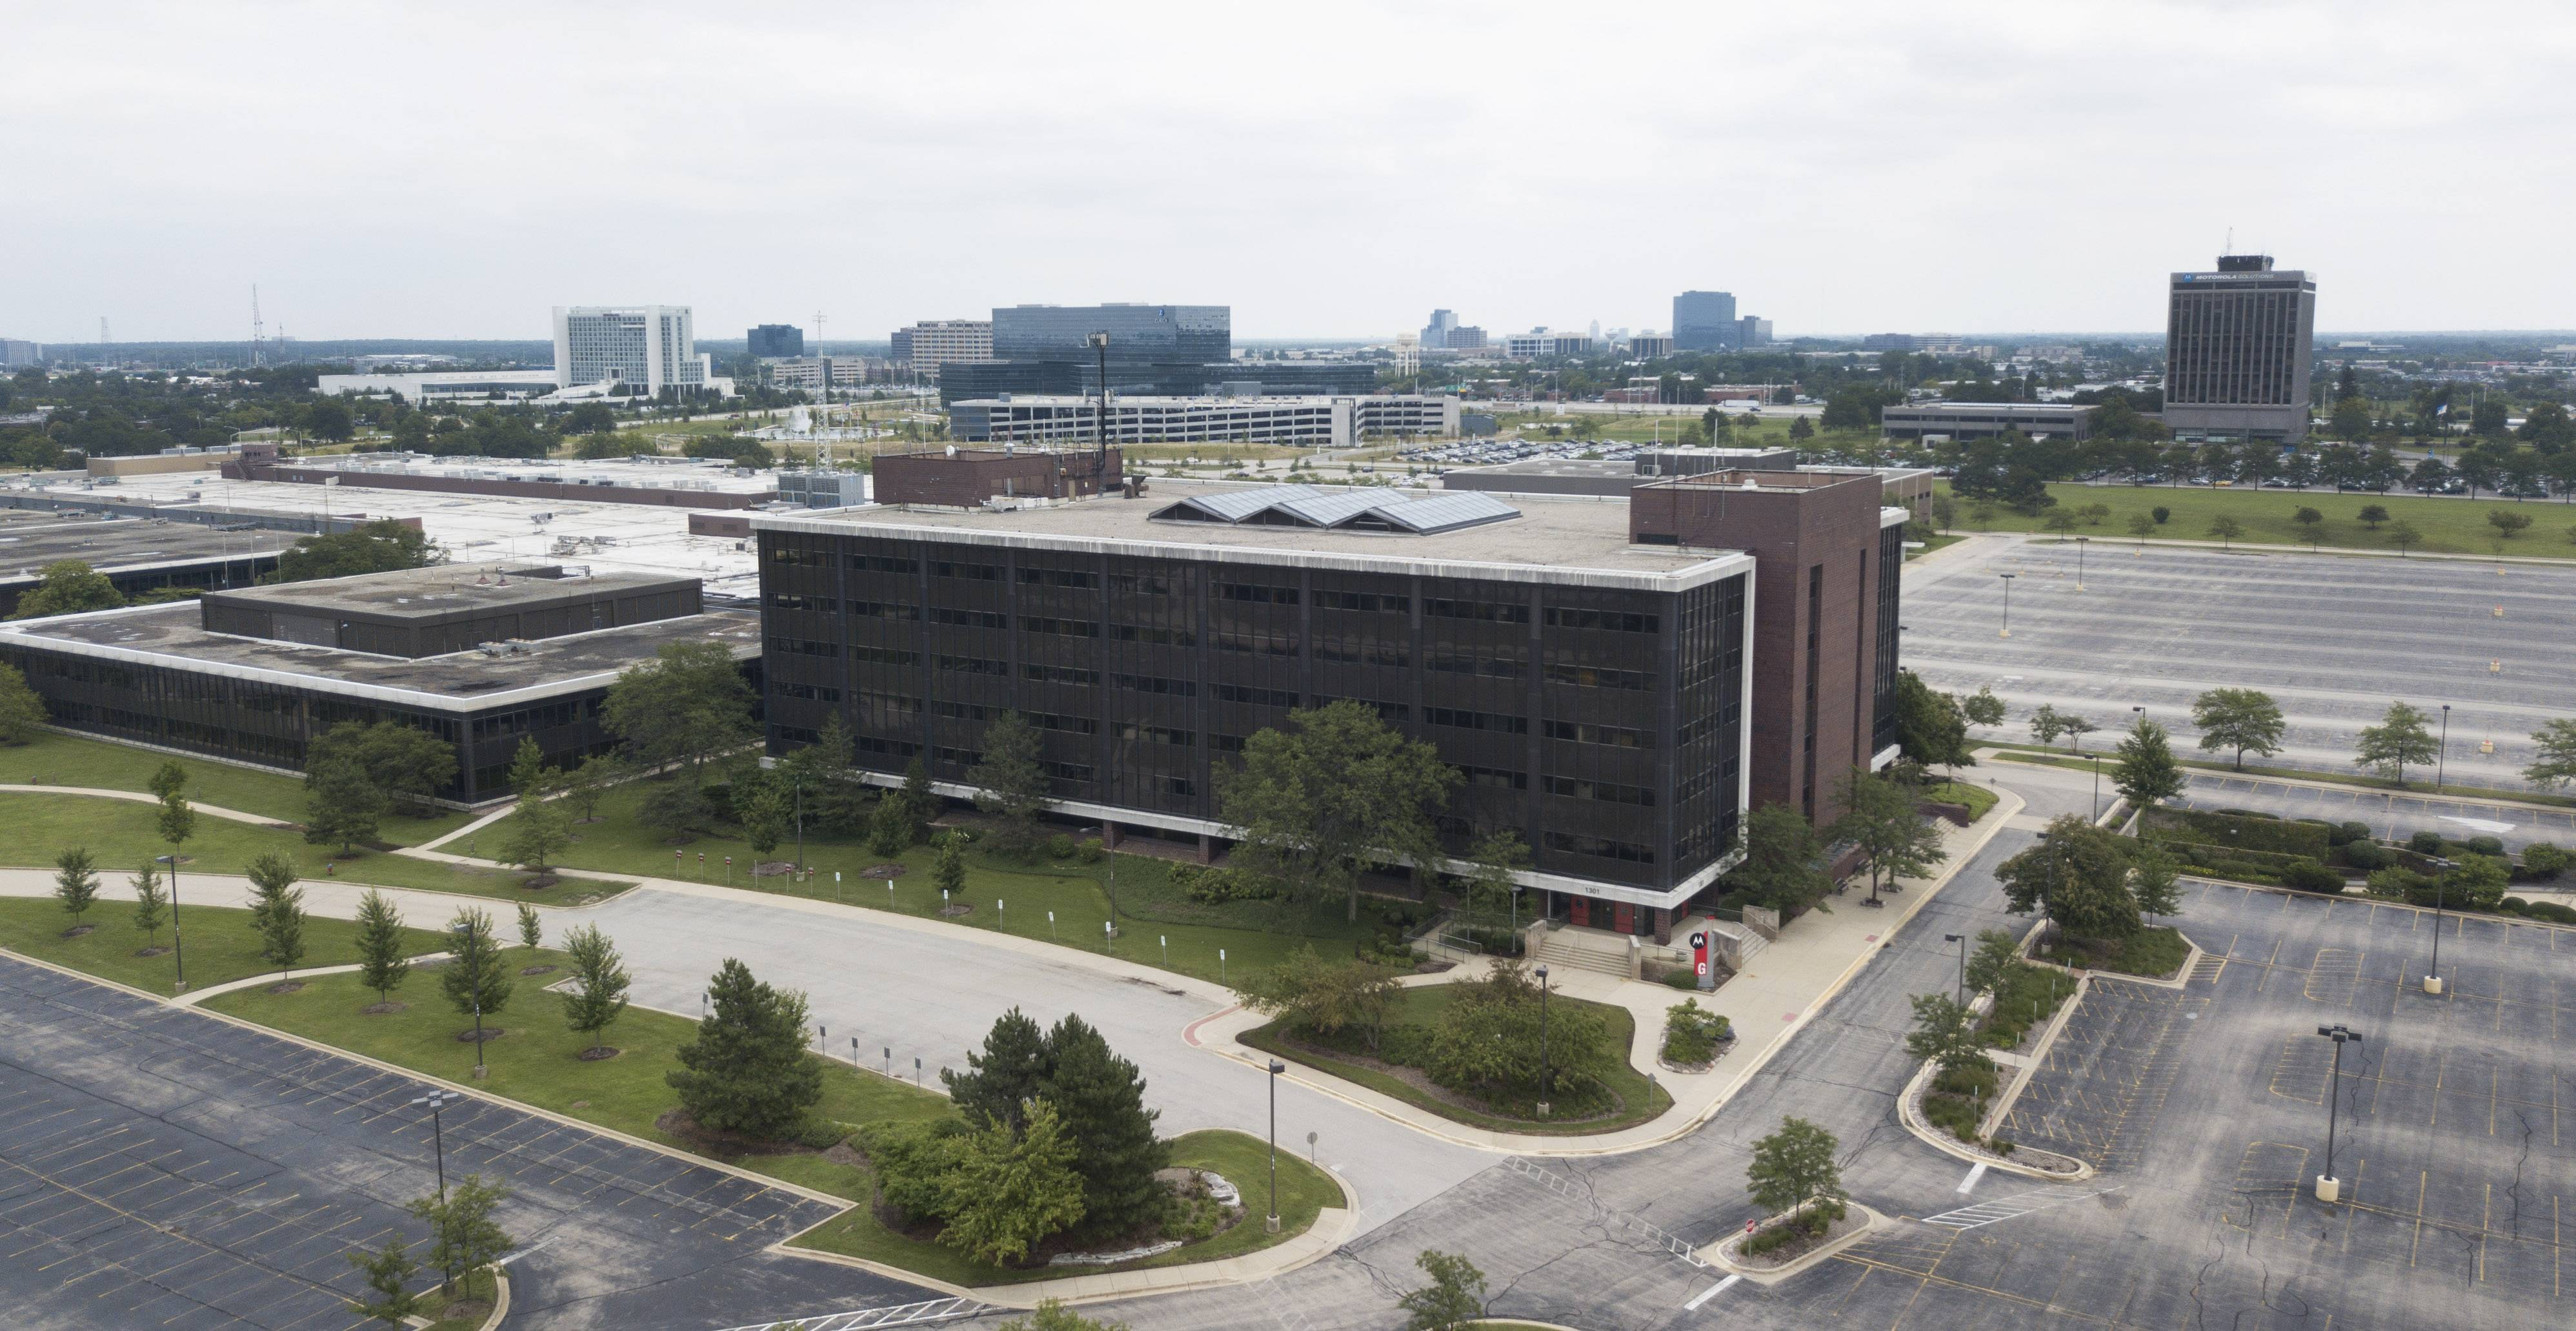 Schaumburg village board members will hear an update on plans to redevelop the former Motorola Solutions campus Tuesday. However, the update will not include more details about the number of homes proposed for the site.